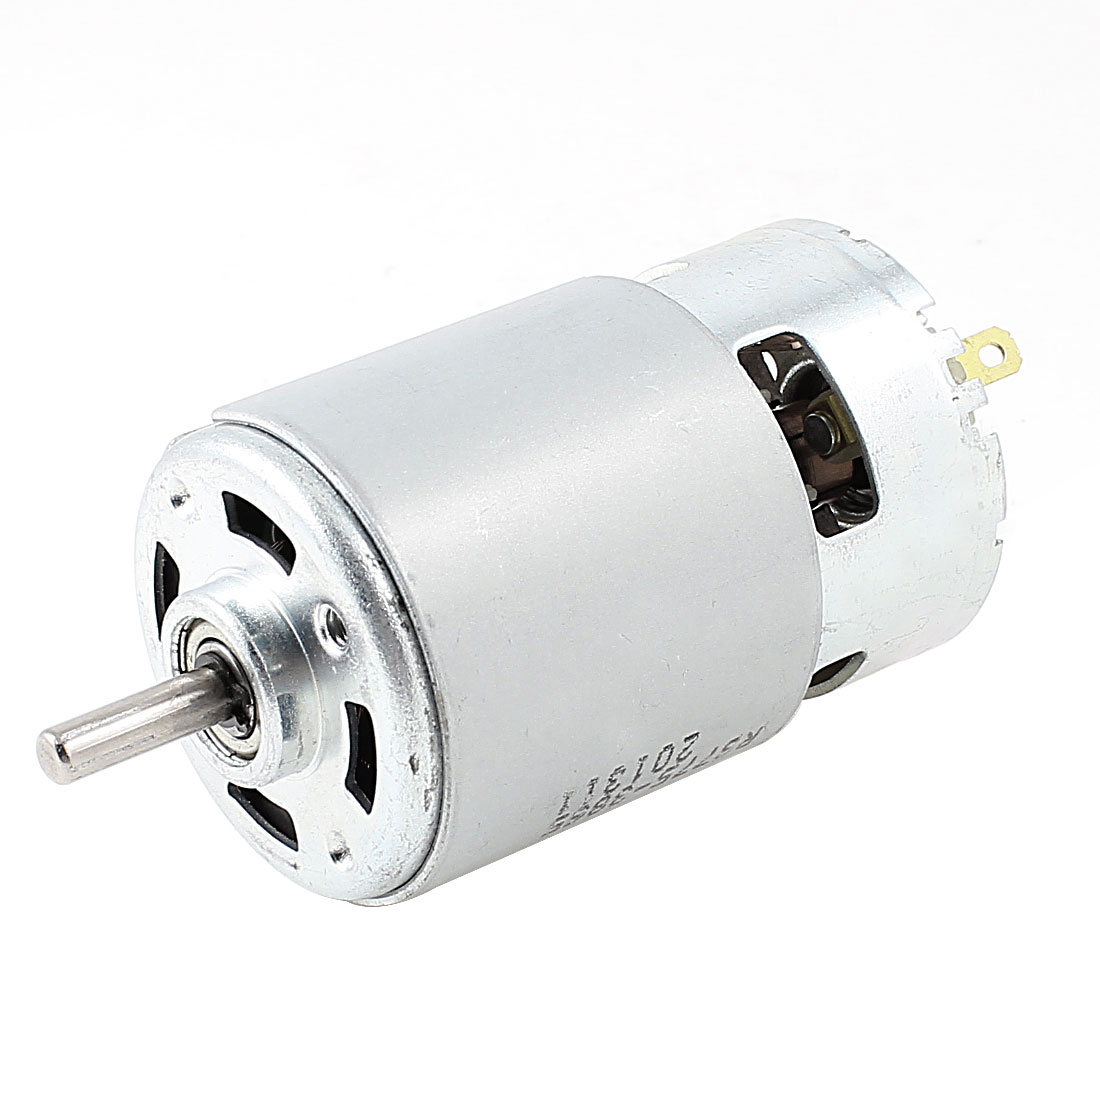 DC 24V 0.31A 7000RPM High Speed 2 Terminal Ball Bearing Electric Magnetic Motor